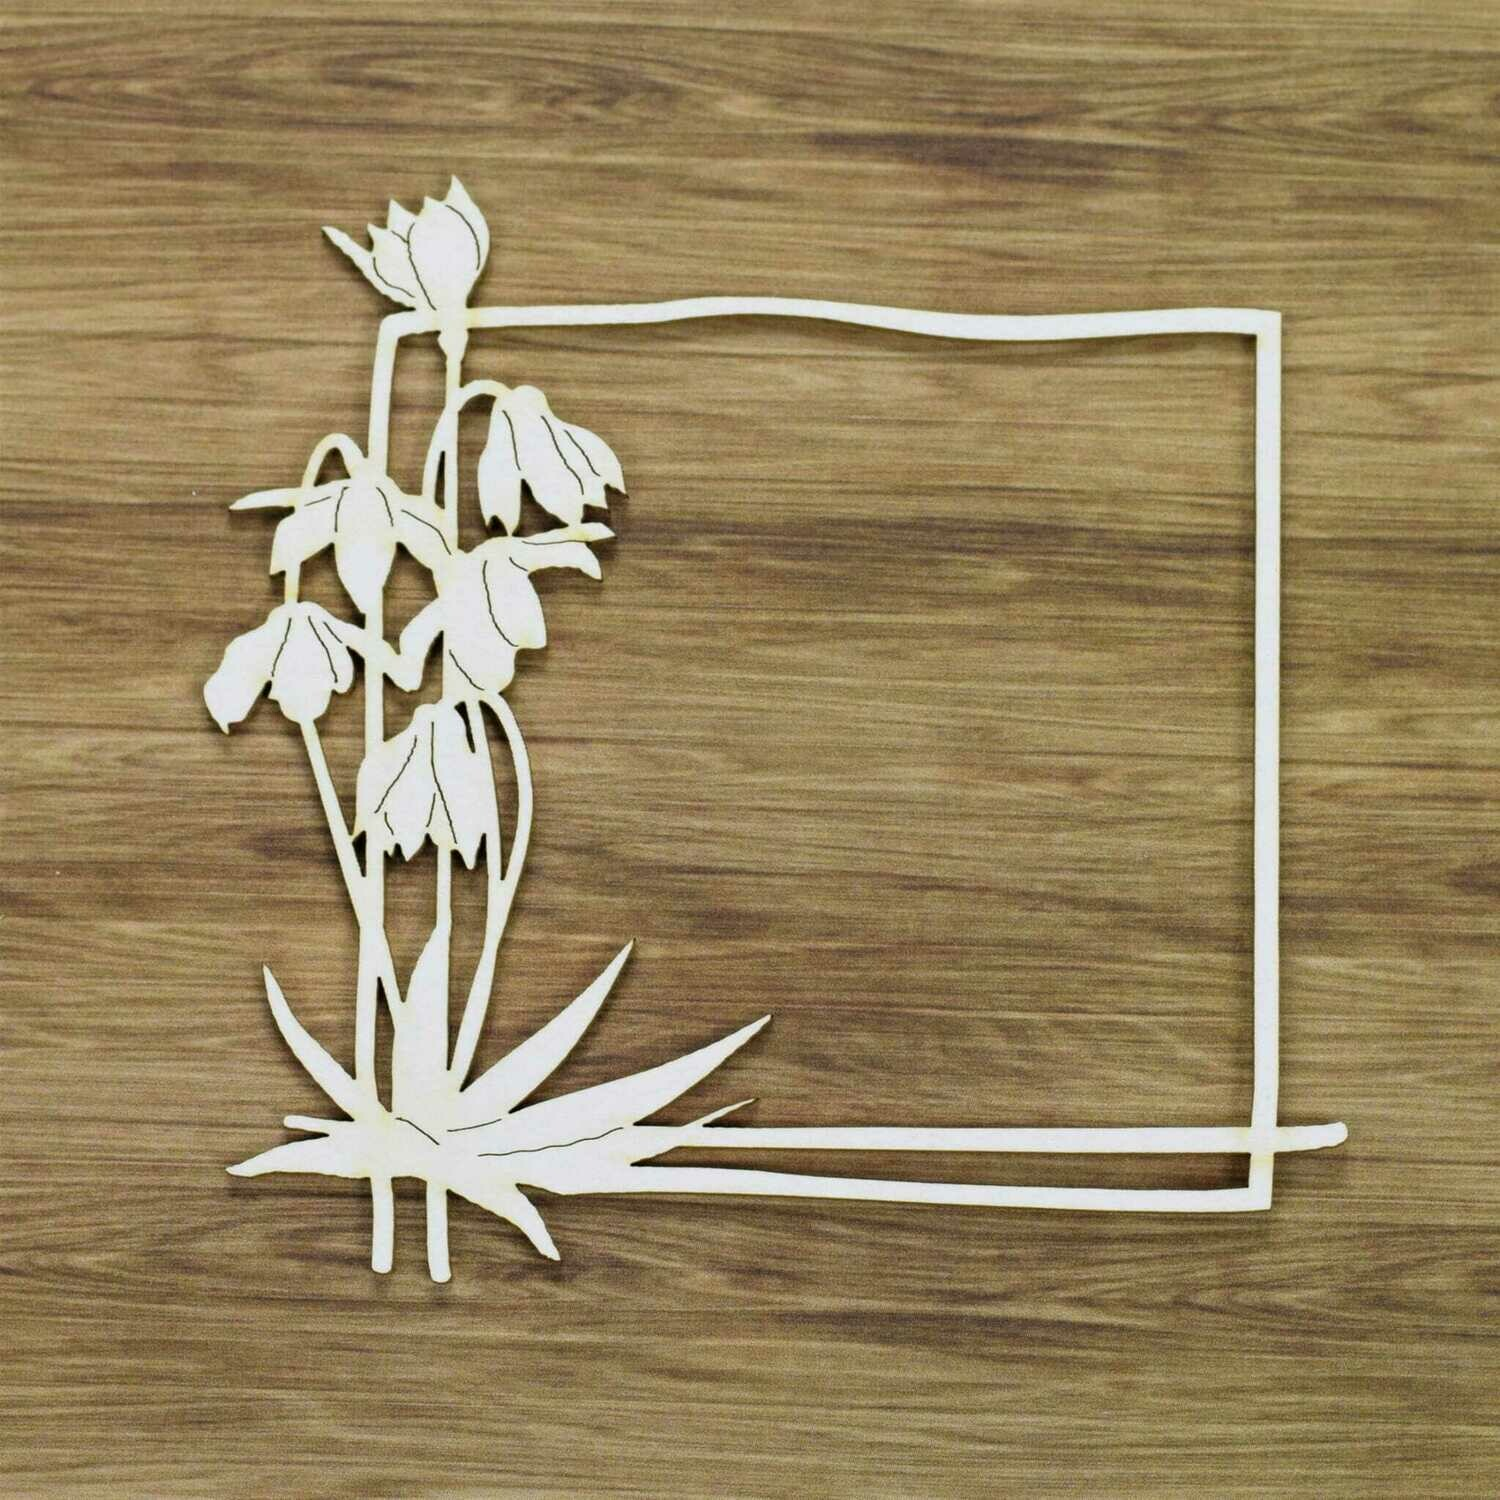 Bouquet of Snowdrops Frame